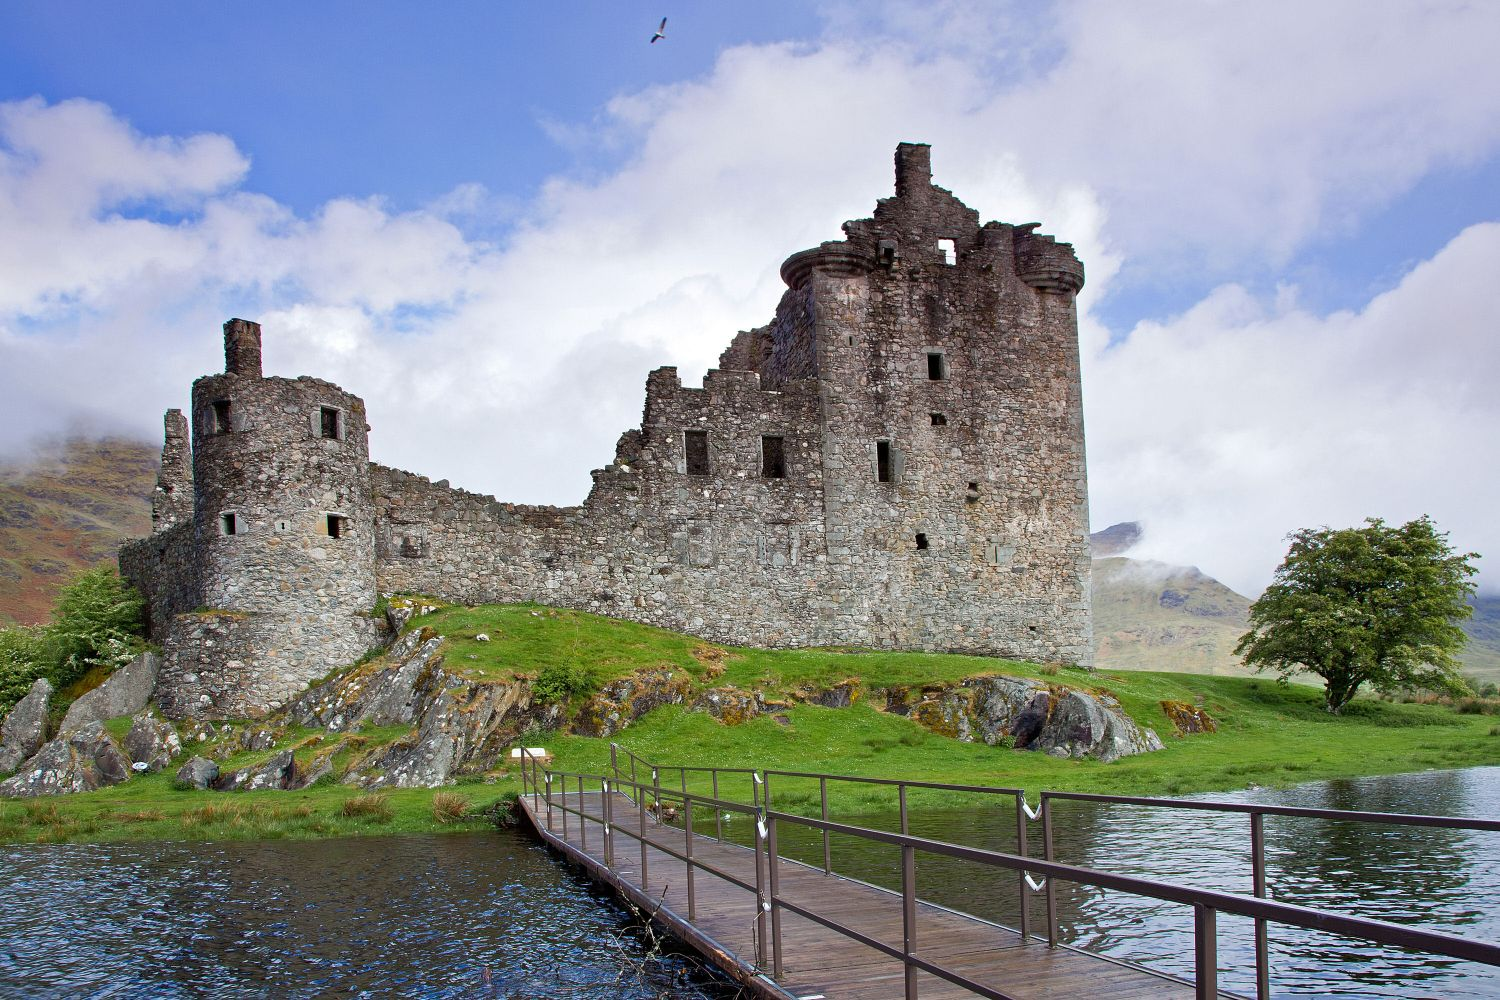 Kilchurn Castle on the shores of Loch Awe